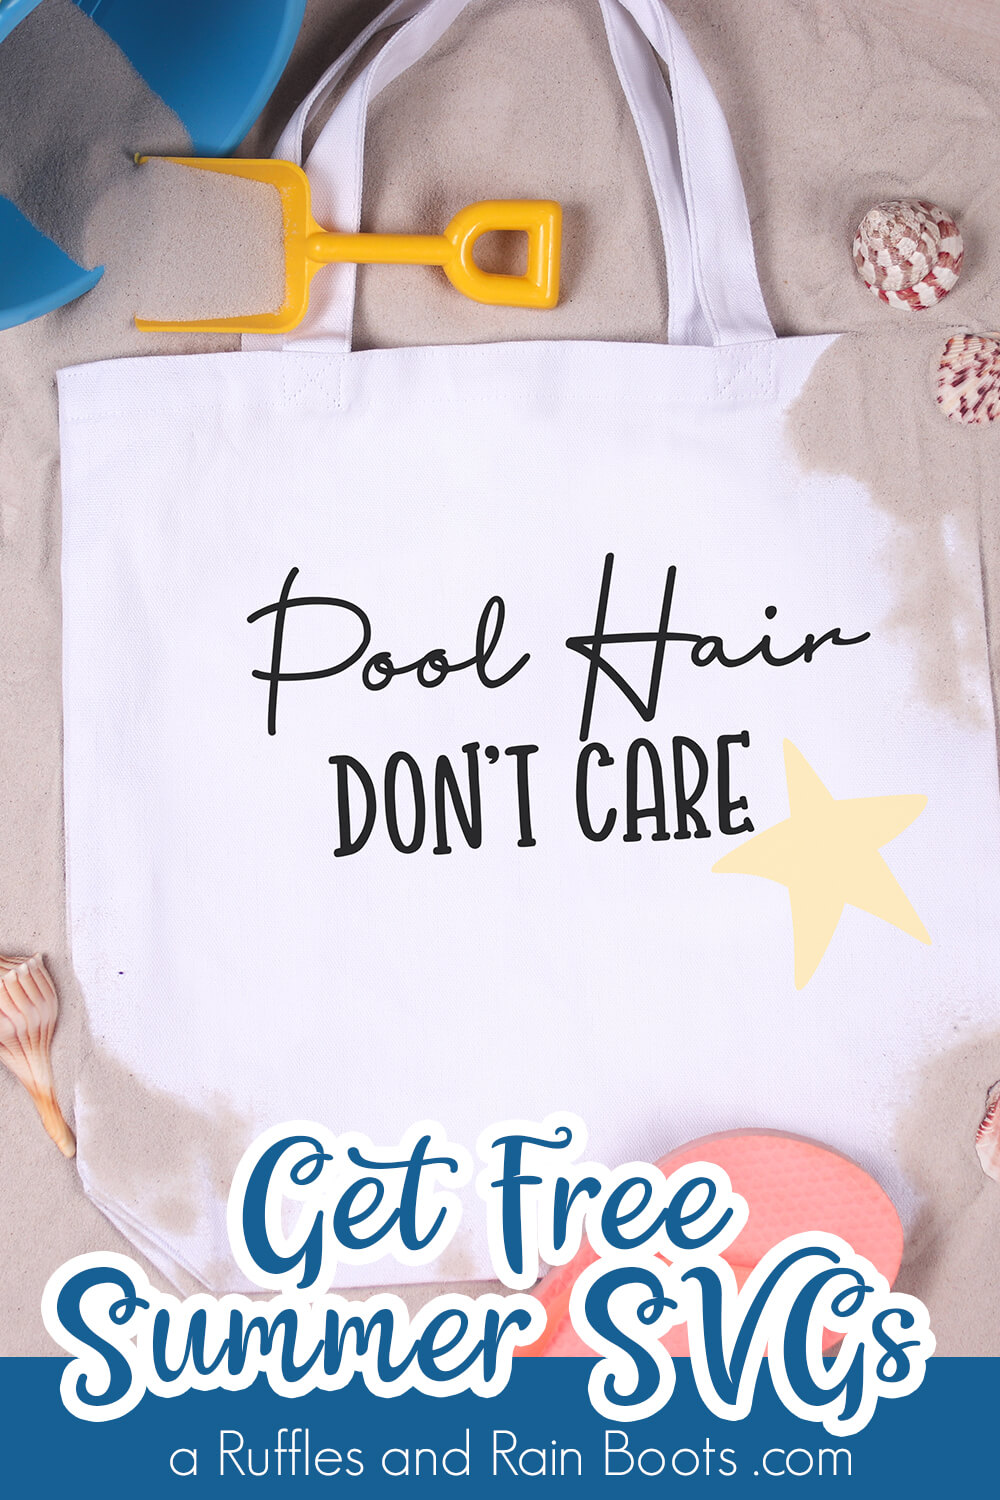 Pool Hair Don't Care summer svg on Beach Bag with text which reads get free summer SVGs